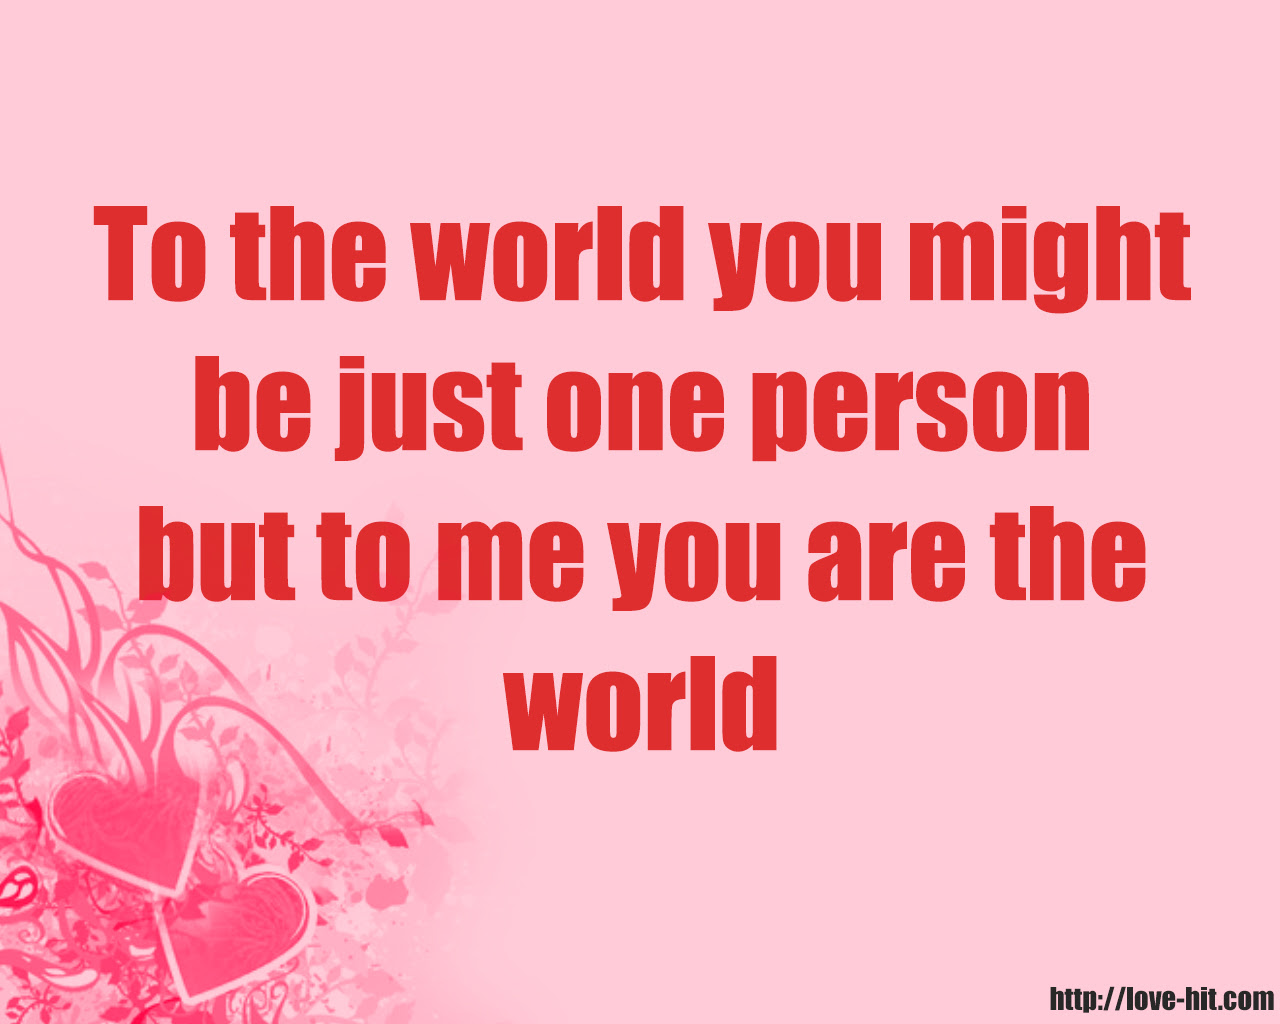 To the world you might be just one person but to me you are the world